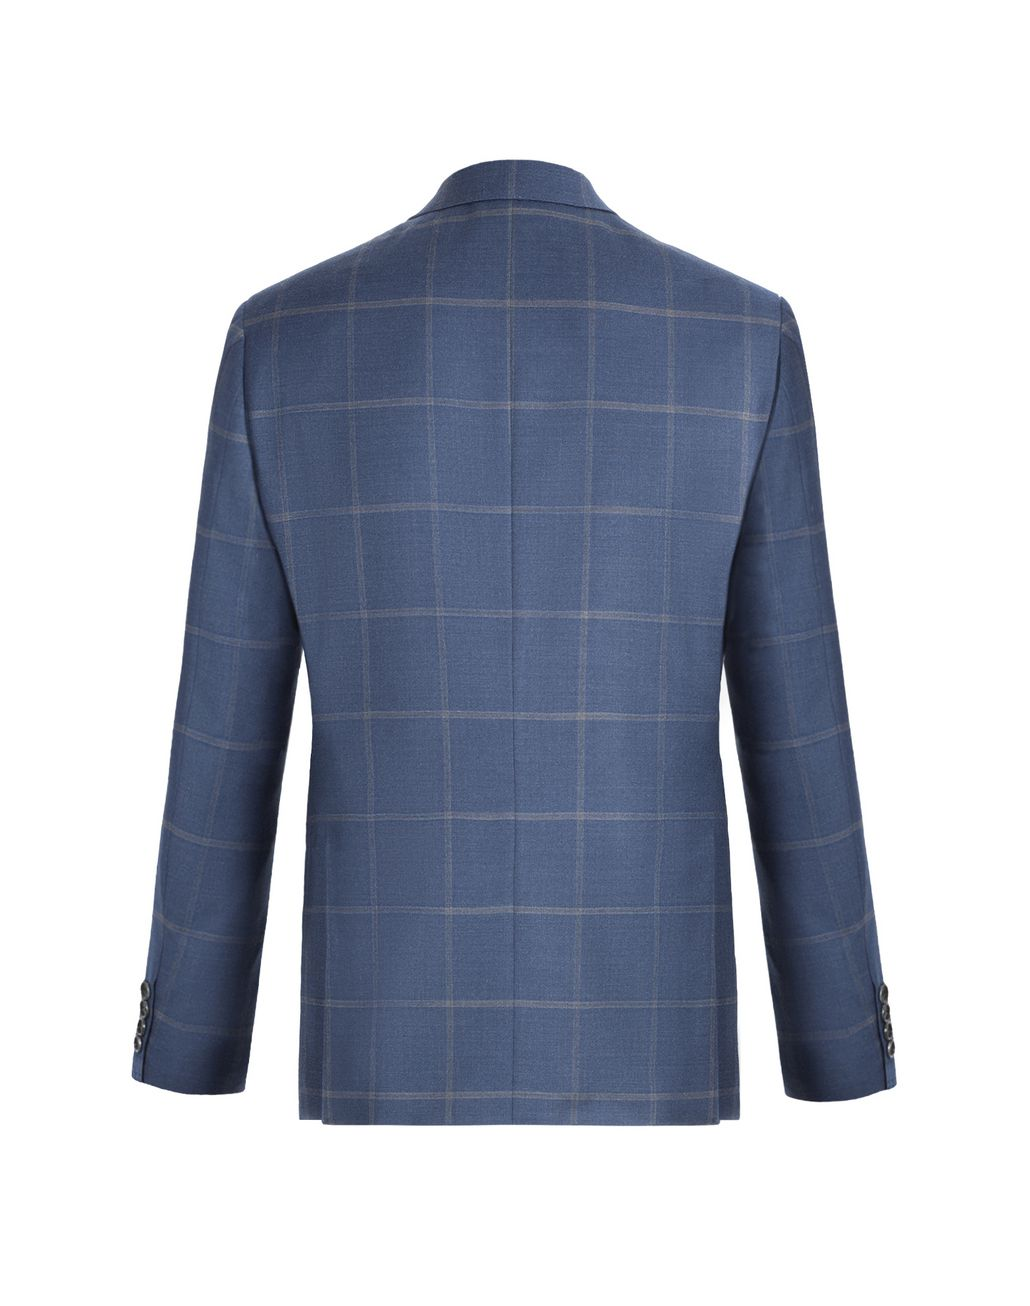 BRIONI Blue and Grey Overcheck Ravello Jacket Jackets U d